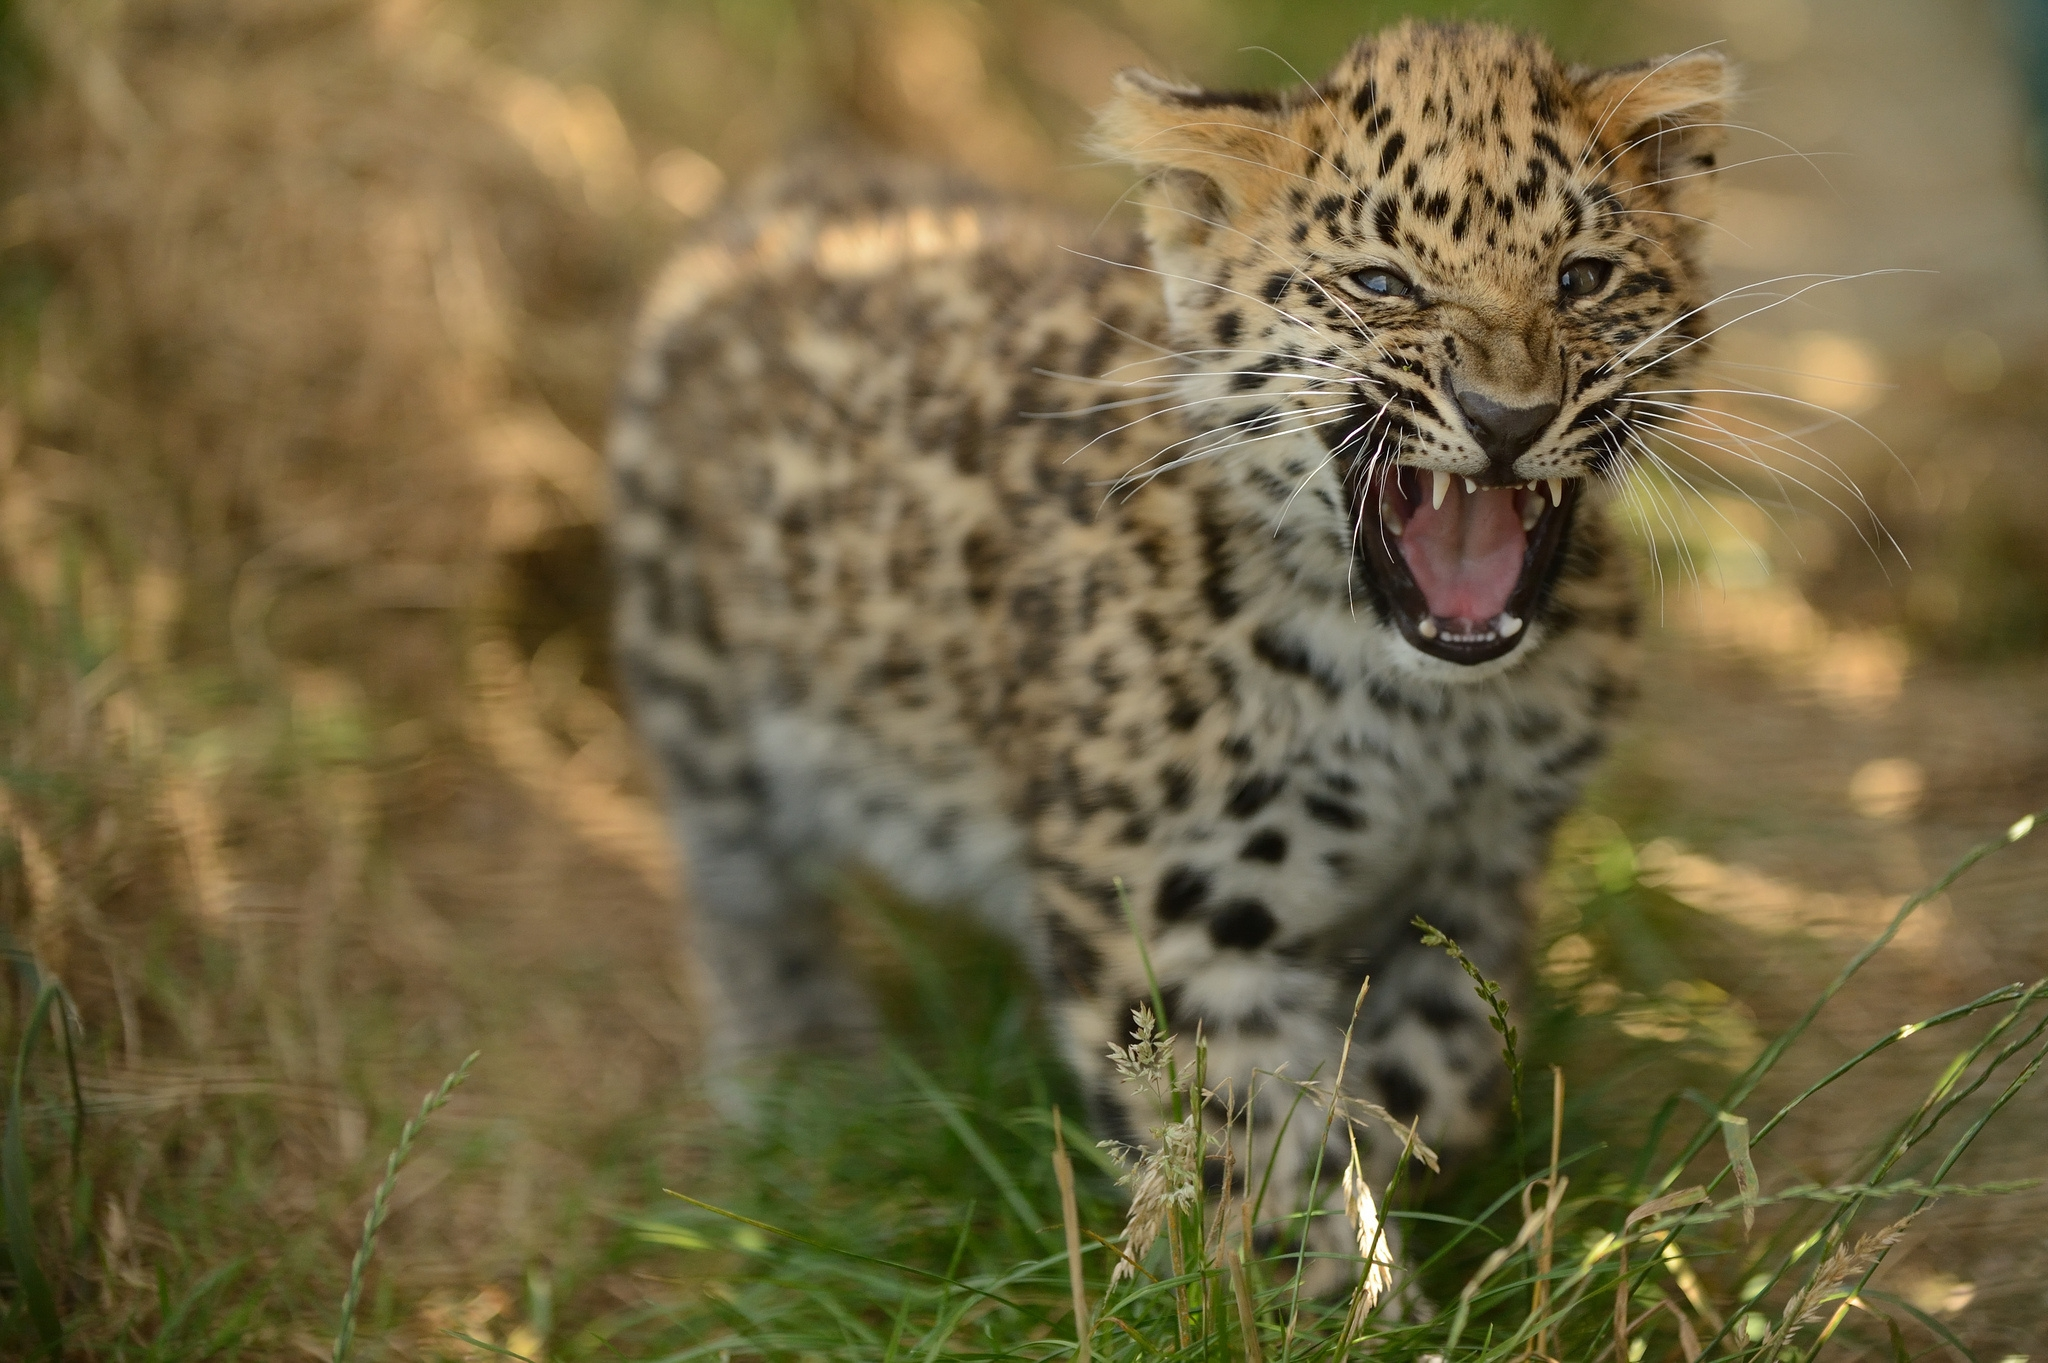 142875 download wallpaper Animals, Leopard, Young, Joey, Grass, Stroll, Big Cat, Predator, Grin, Aggression screensavers and pictures for free